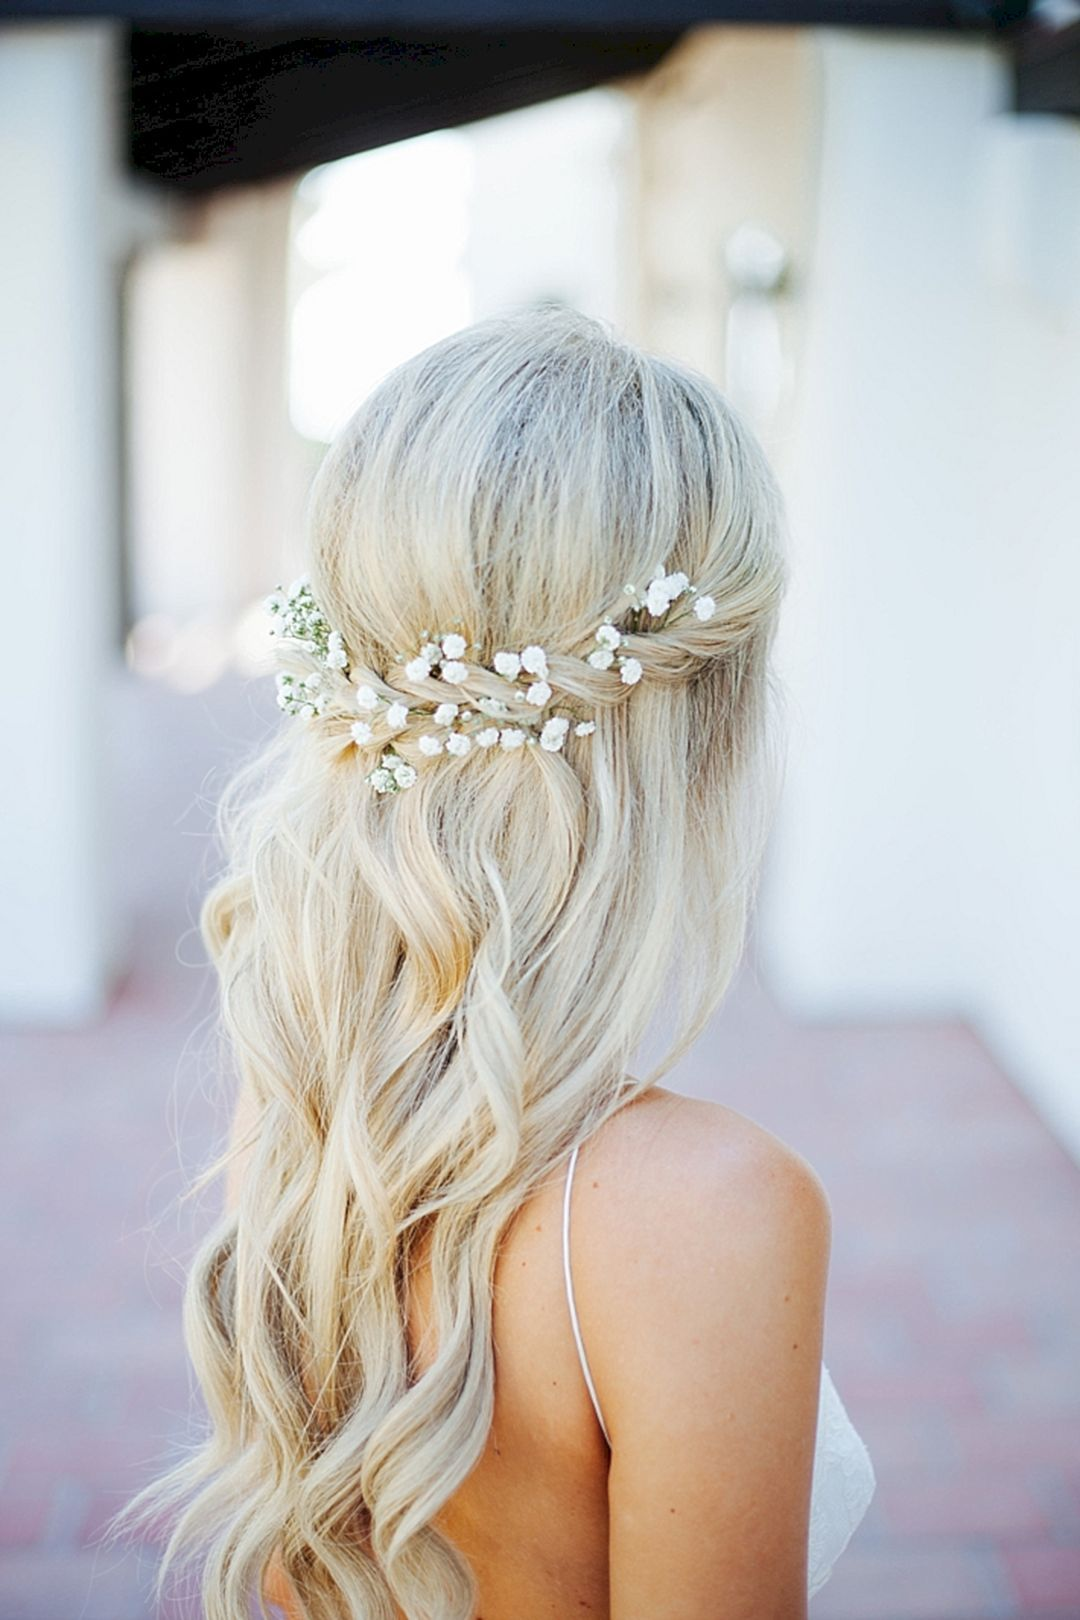 Top 50 Wedding Short Hairstyles With Flower Crown Ideas | Nice tops ...